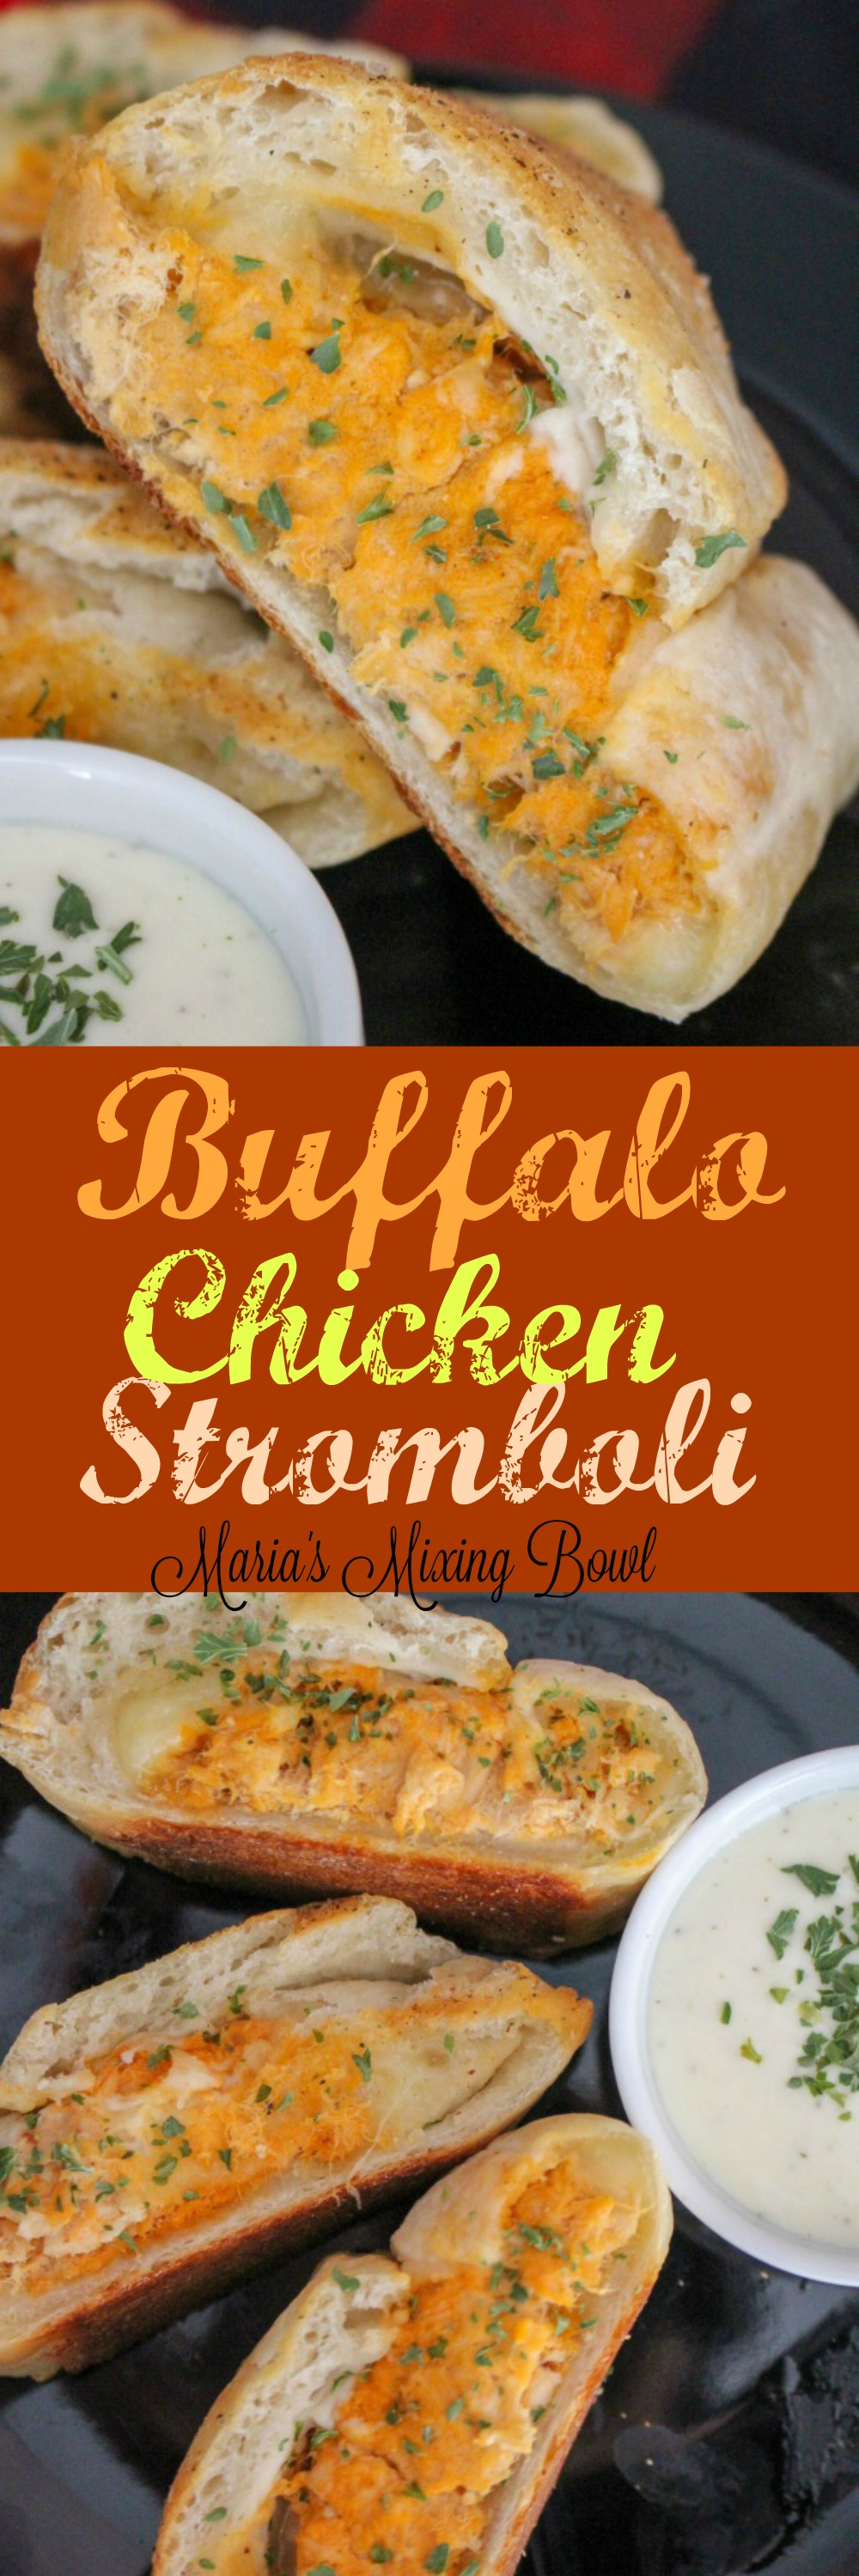 Buffalo Chicken Stromboli -If you love Buffalo wings then you have to try these incredibly easy  stromboli made with rotisserie chicken. Serve this as an effortless and quick weeknight meal or as a tasty gameday snack!